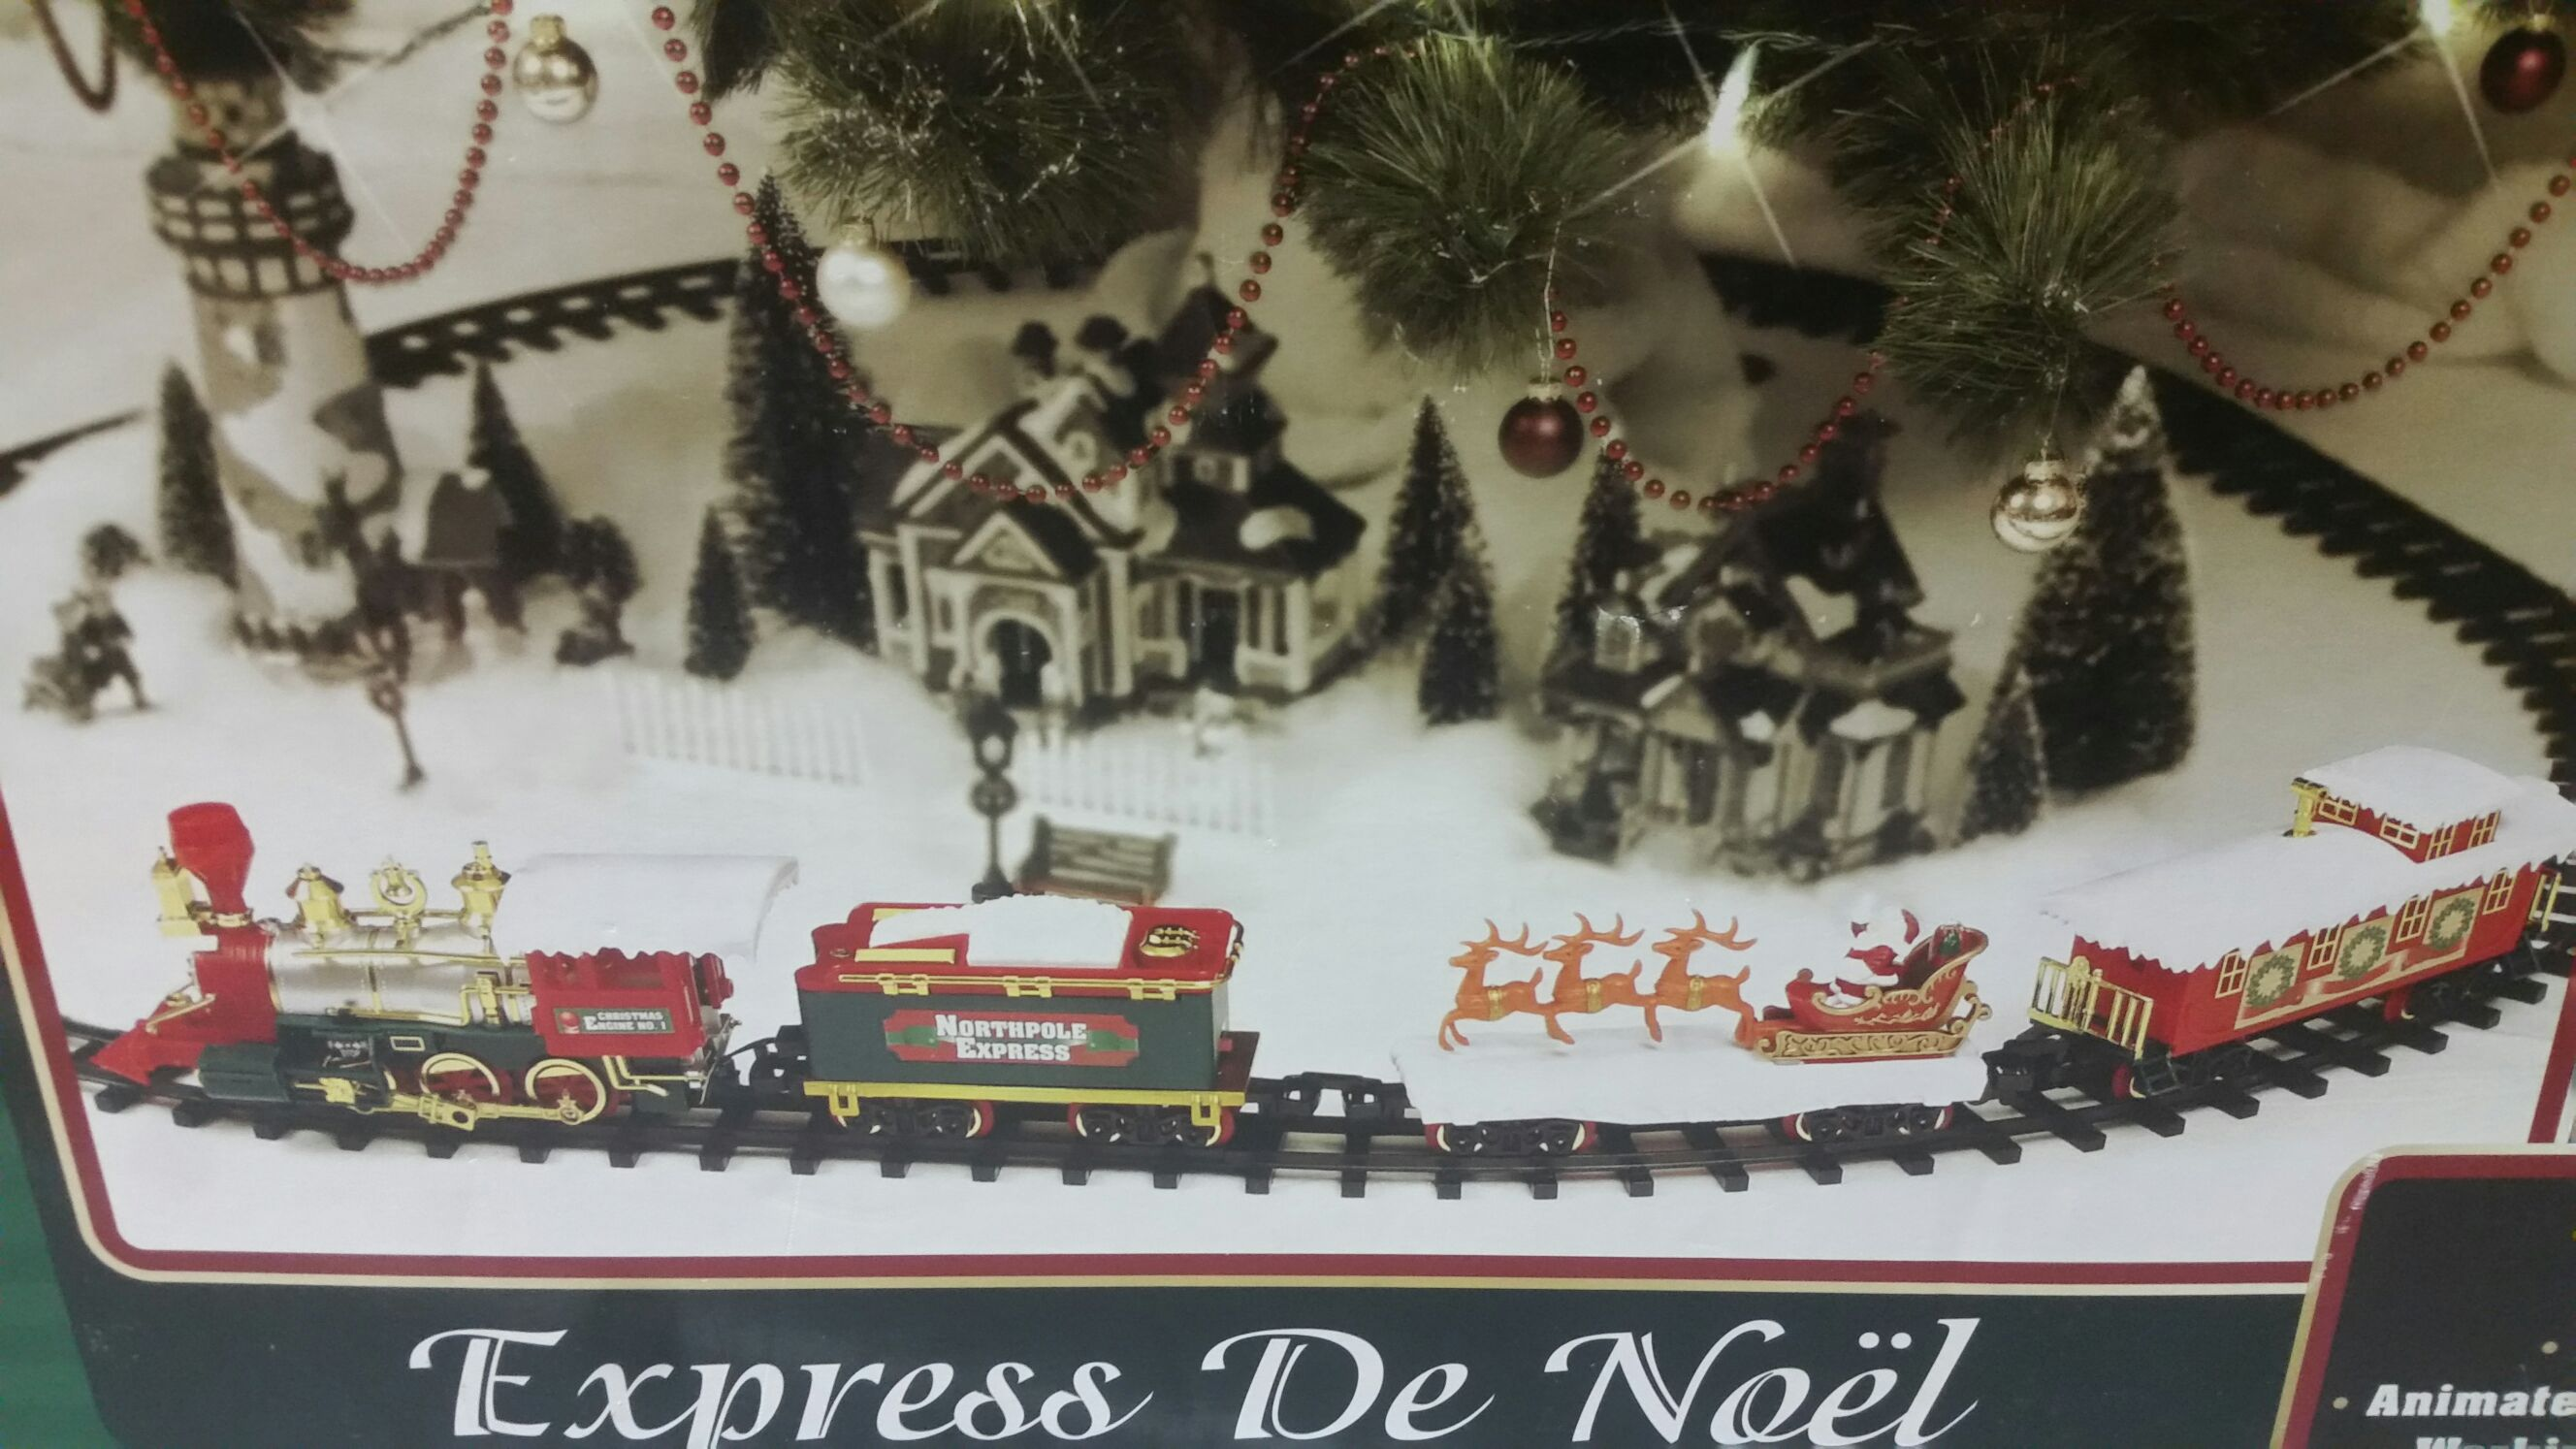 Toy State Christmas Time Express Ornament - Toy State Industrial Ltd. (2005) front image (front cover)